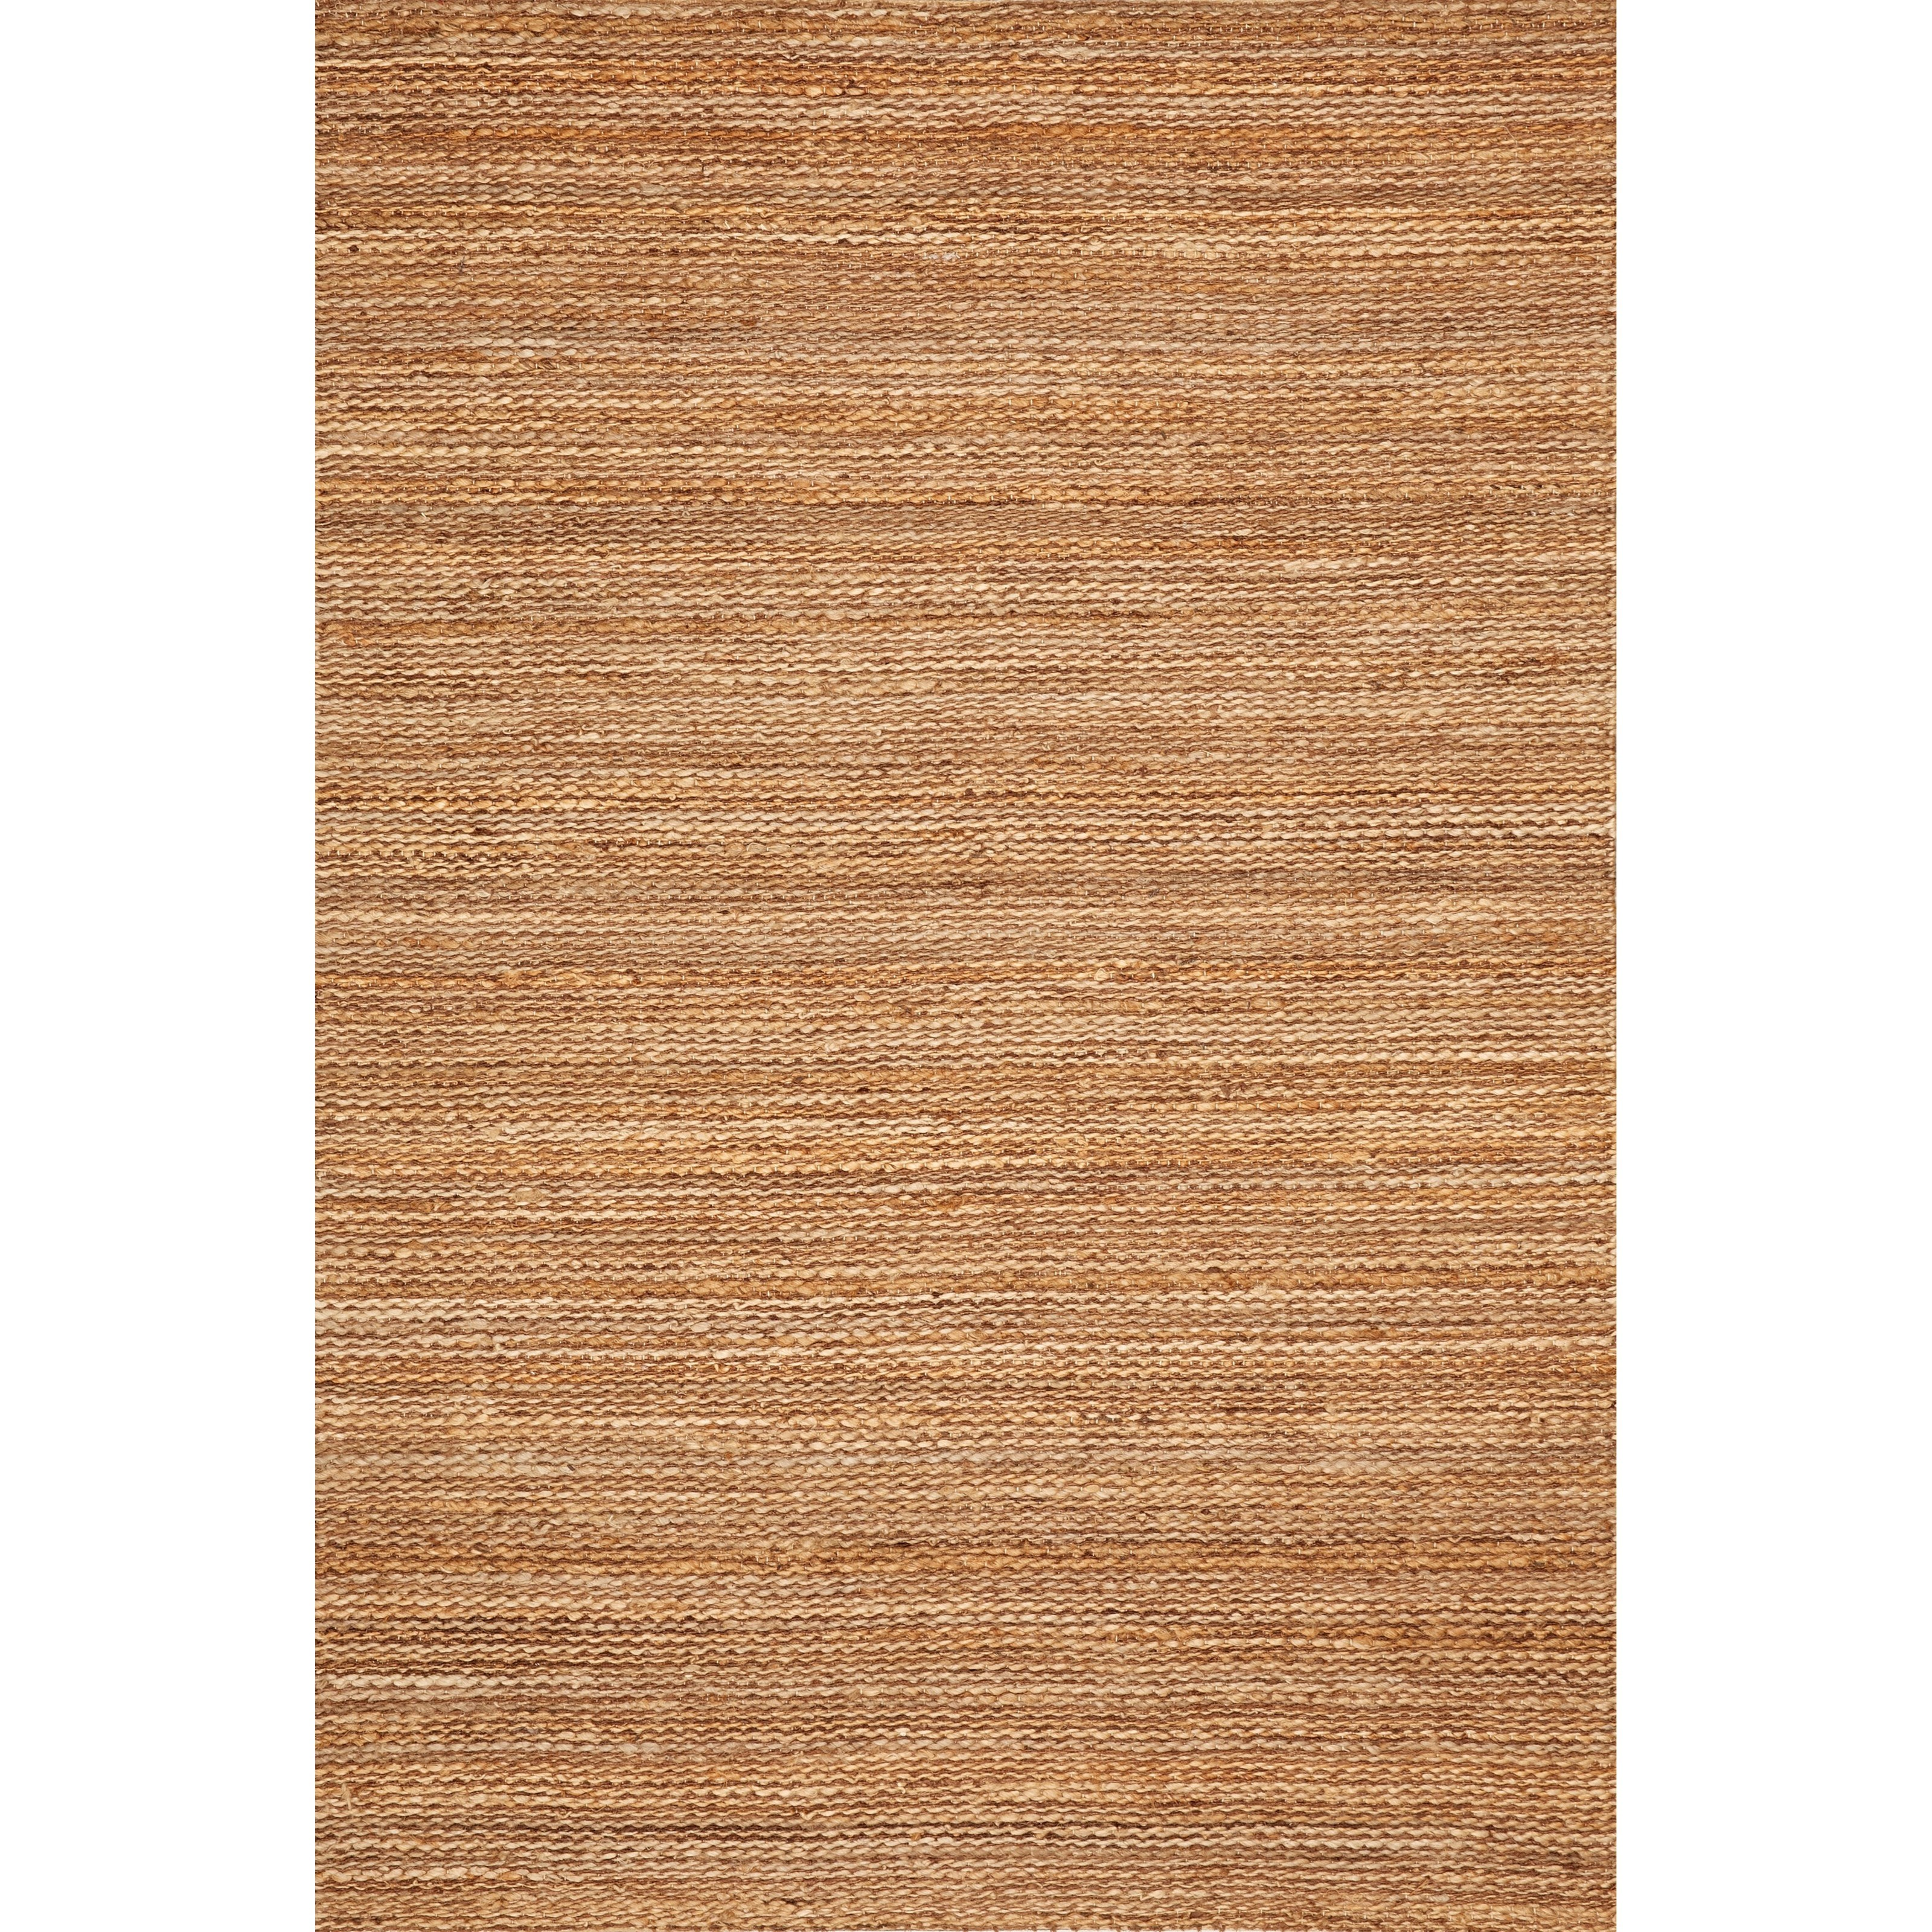 Dalyn Banyan Fudge 9'X13' Rug - Item Number: BN100FU9X13